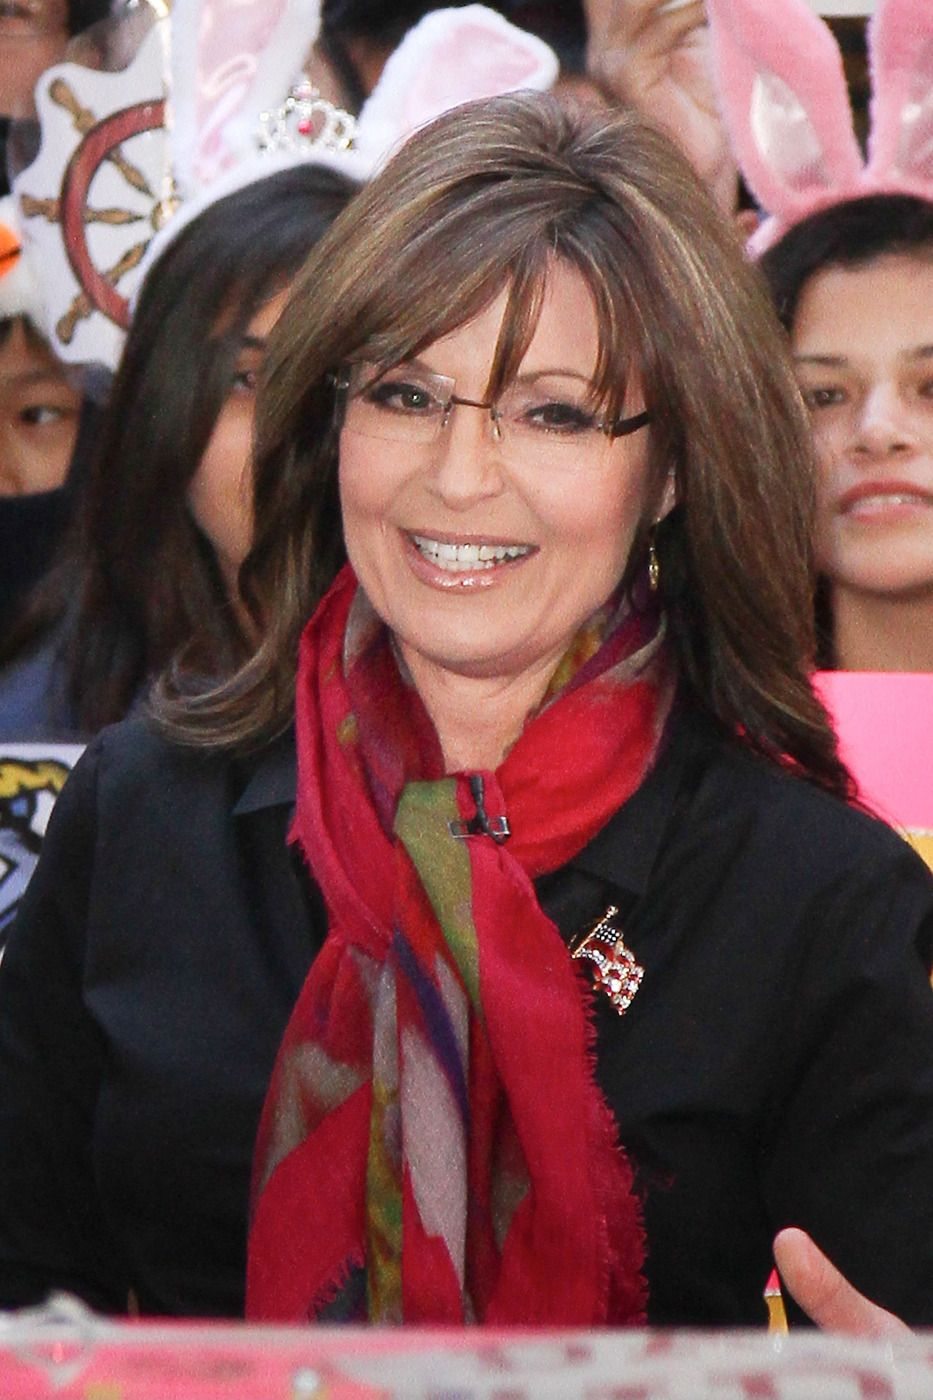 Celebrites Sarah Palin nudes (48 foto and video), Ass, Bikini, Instagram, underwear 2018